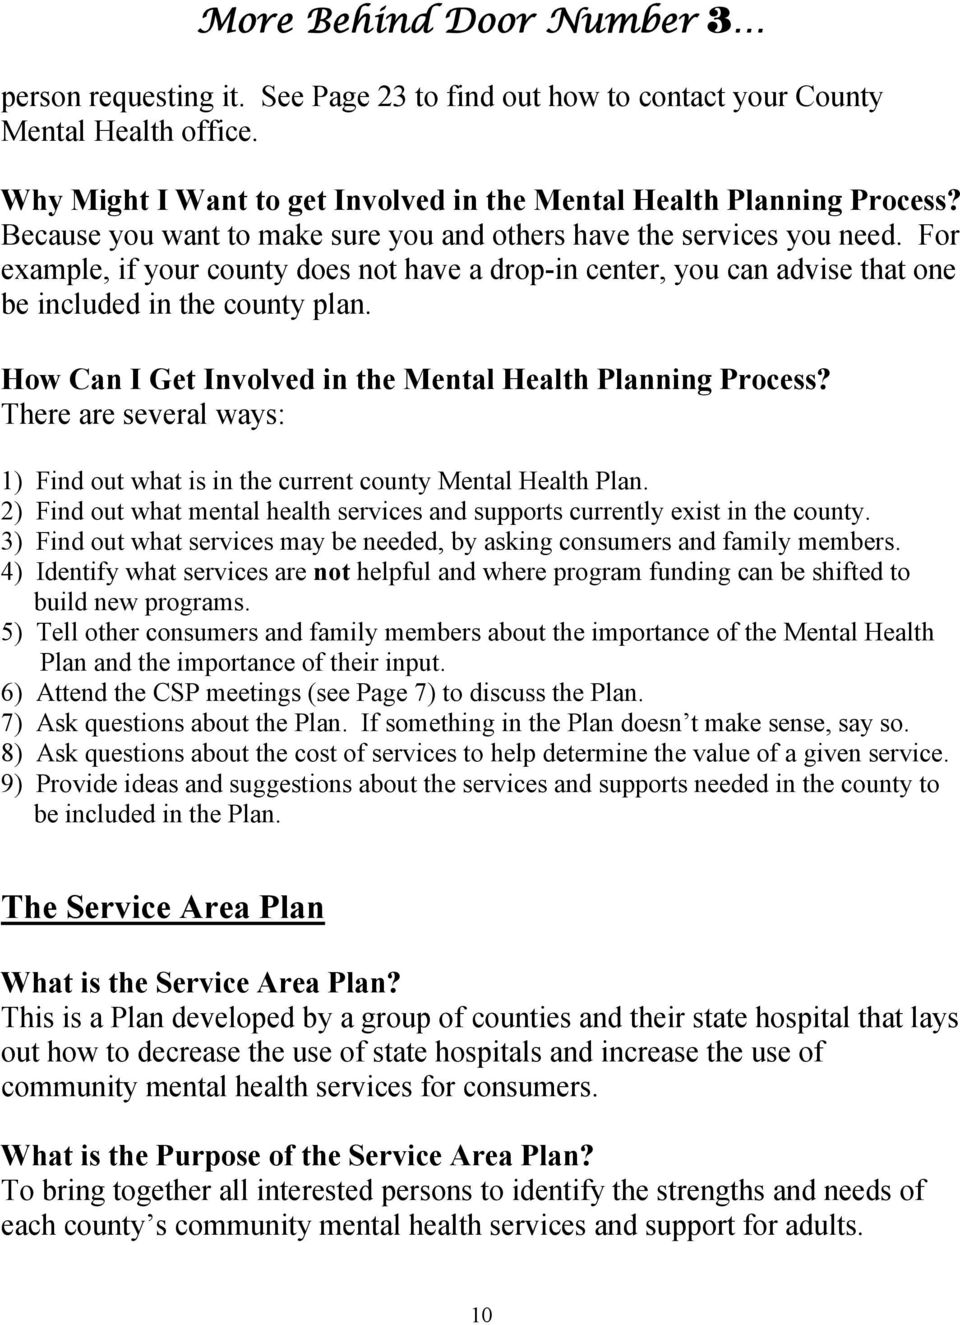 How Can I Get Involved in the Mental Health Planning Process? There are several ways: 1) Find out what is in the current county Mental Health Plan.